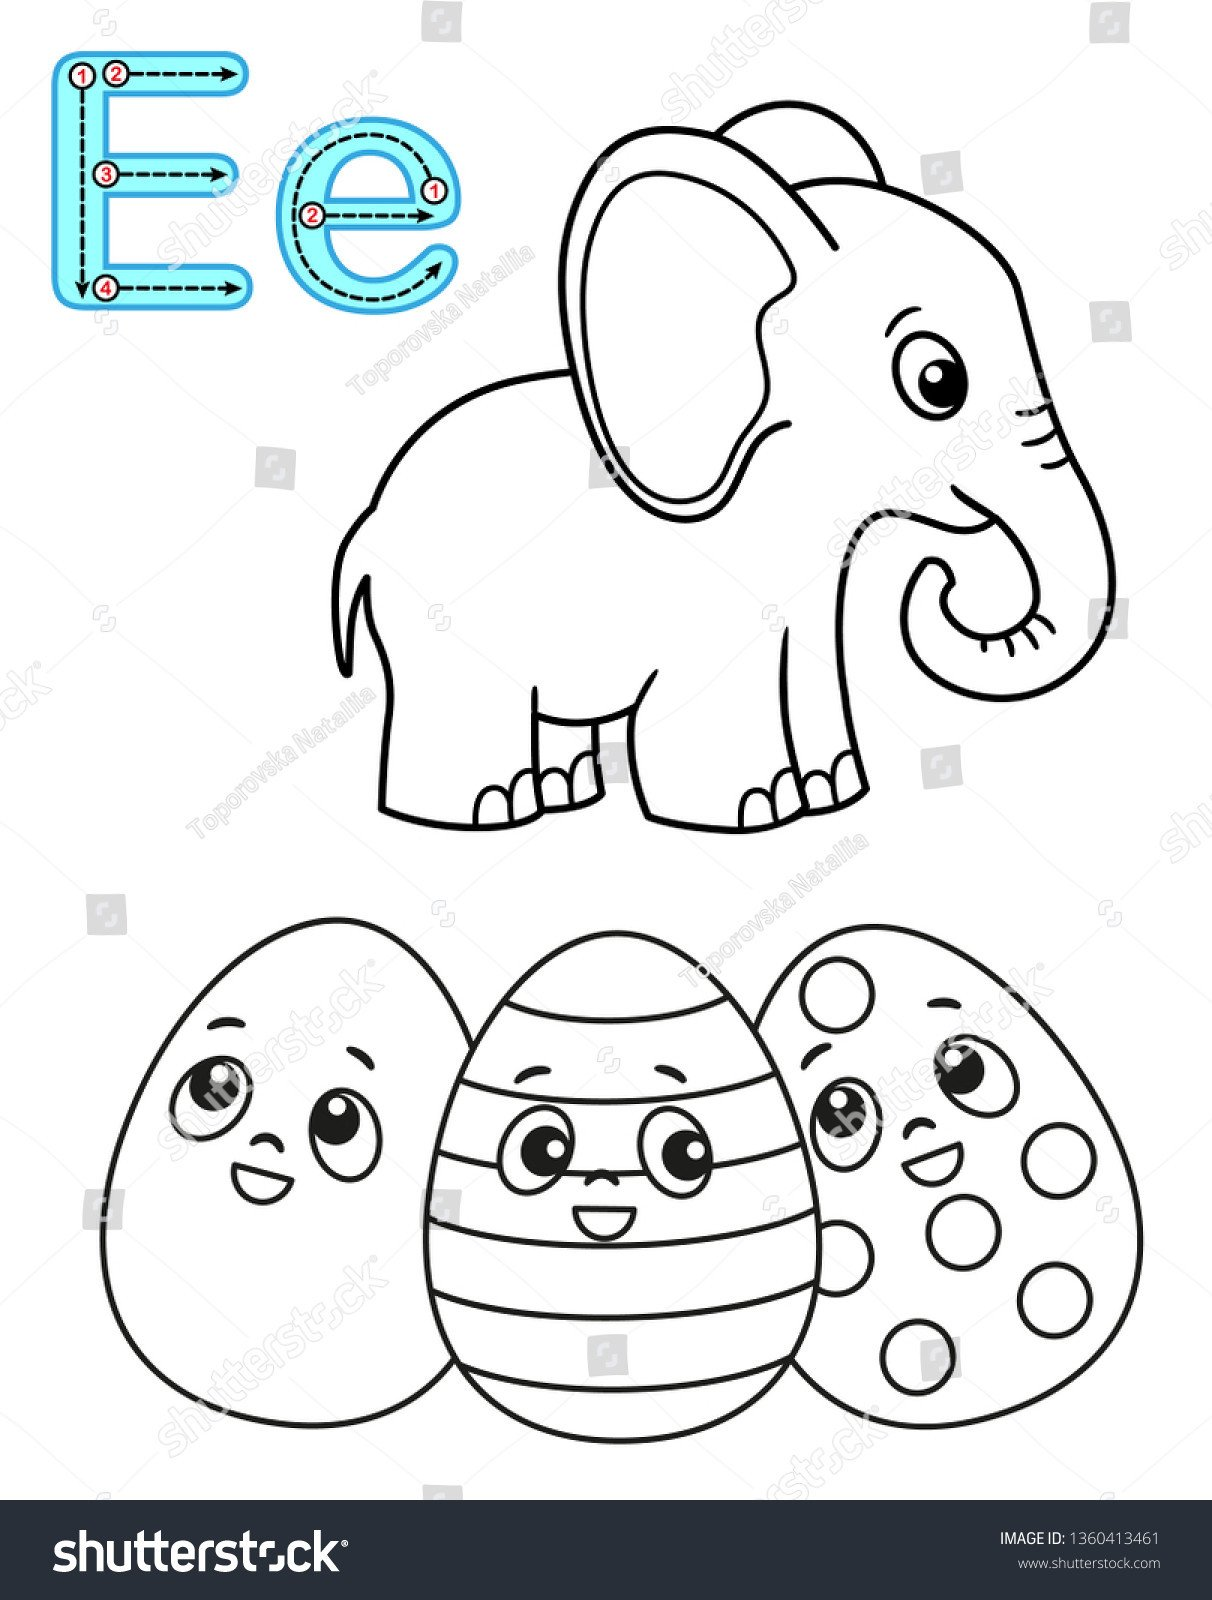 Mammals Worksheets for Kindergarten Worksheets Animals Worksheets for Kids Printables